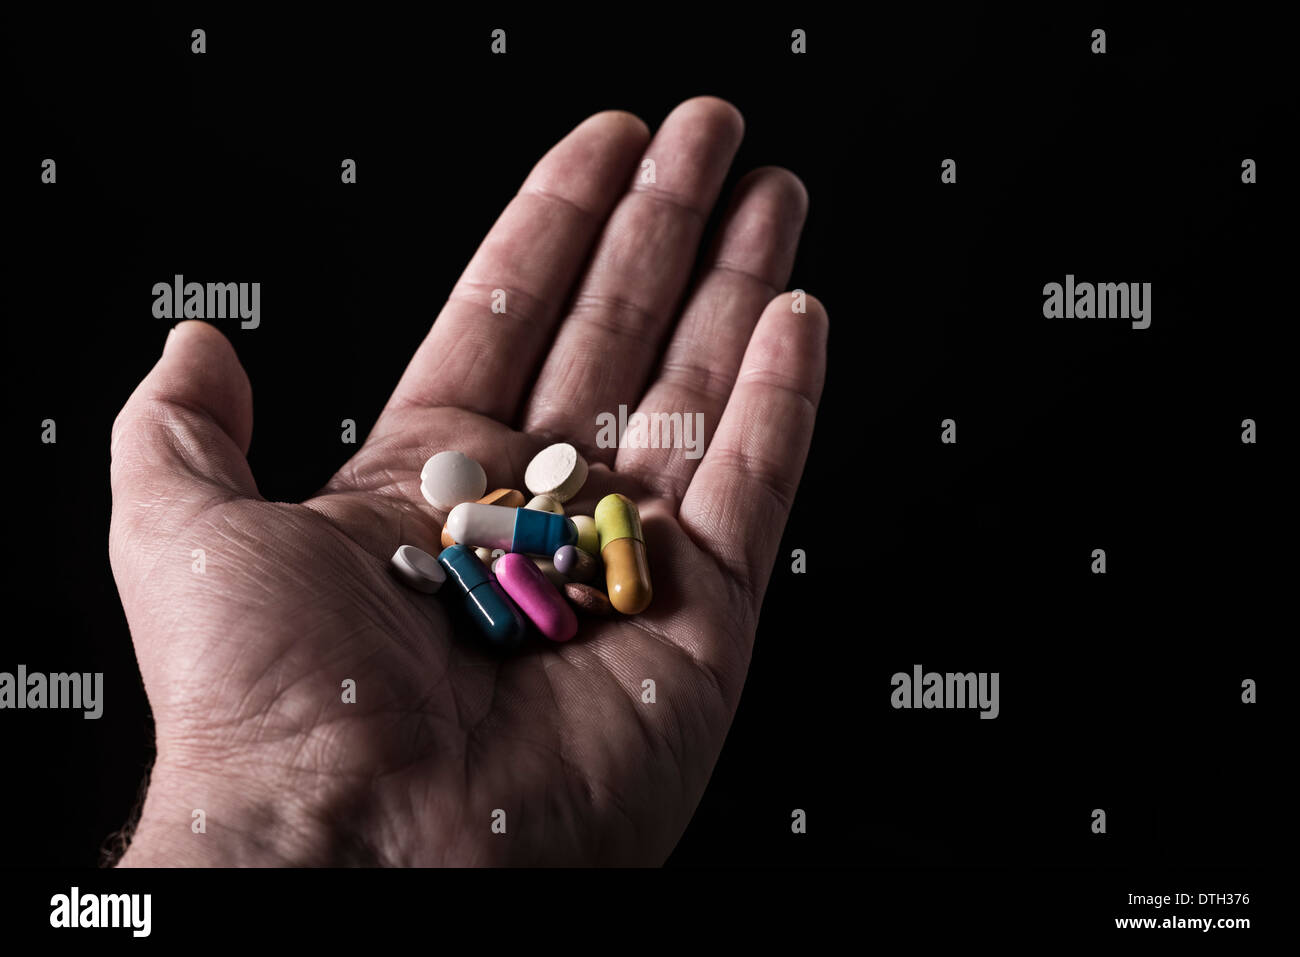 Various Drugs Stock Photos & Various Drugs Stock Images - Alamy